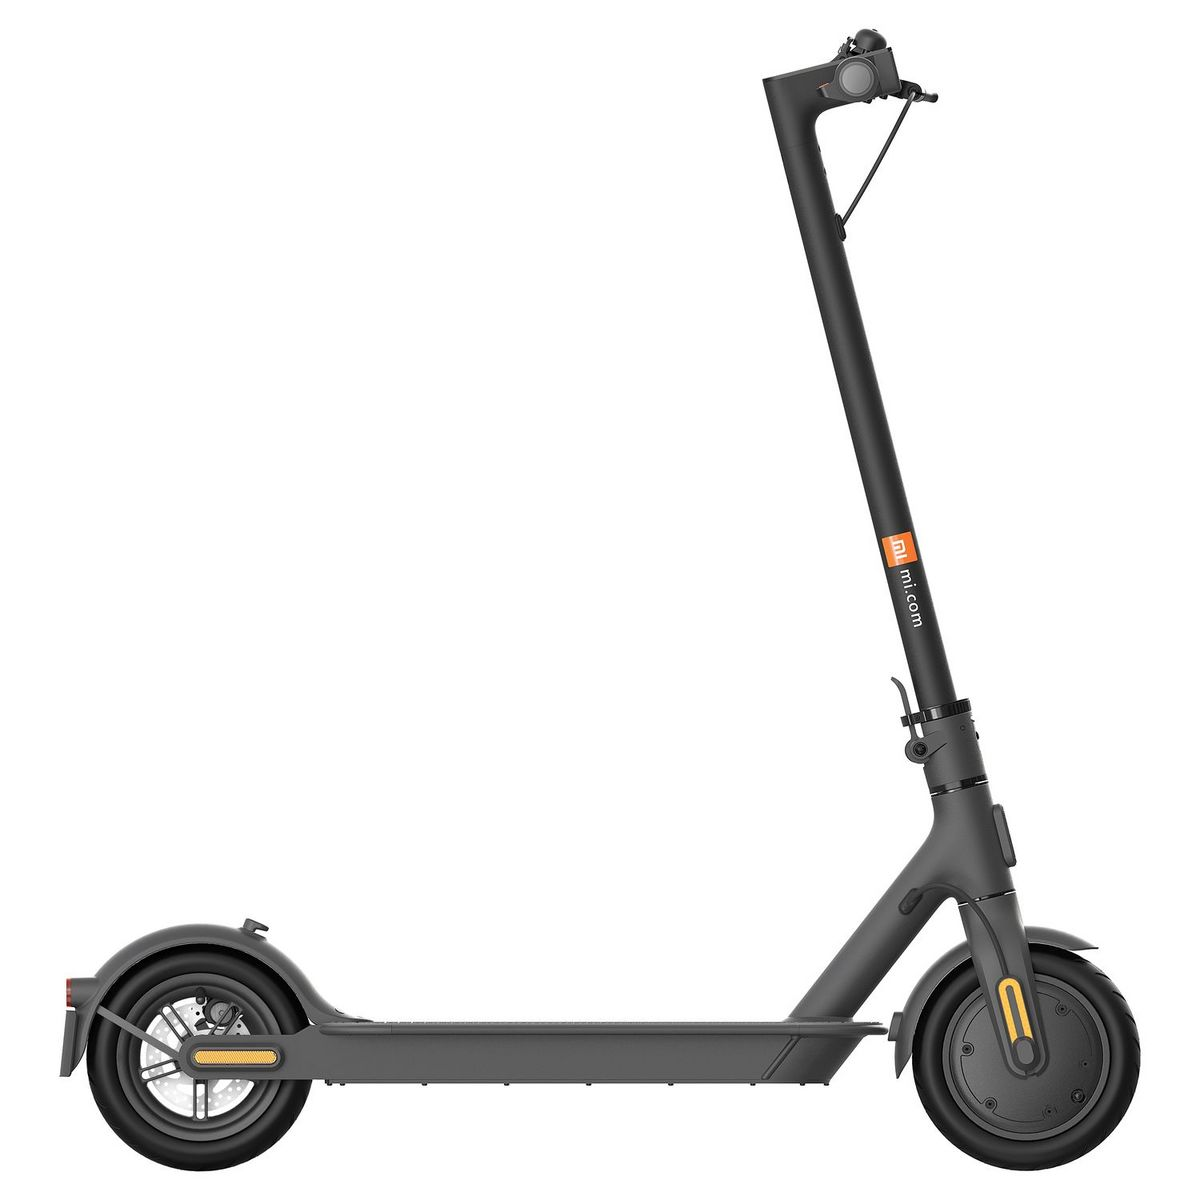 Trottinette électrique Mi Electric Scooter 1S - Gris/Jaune